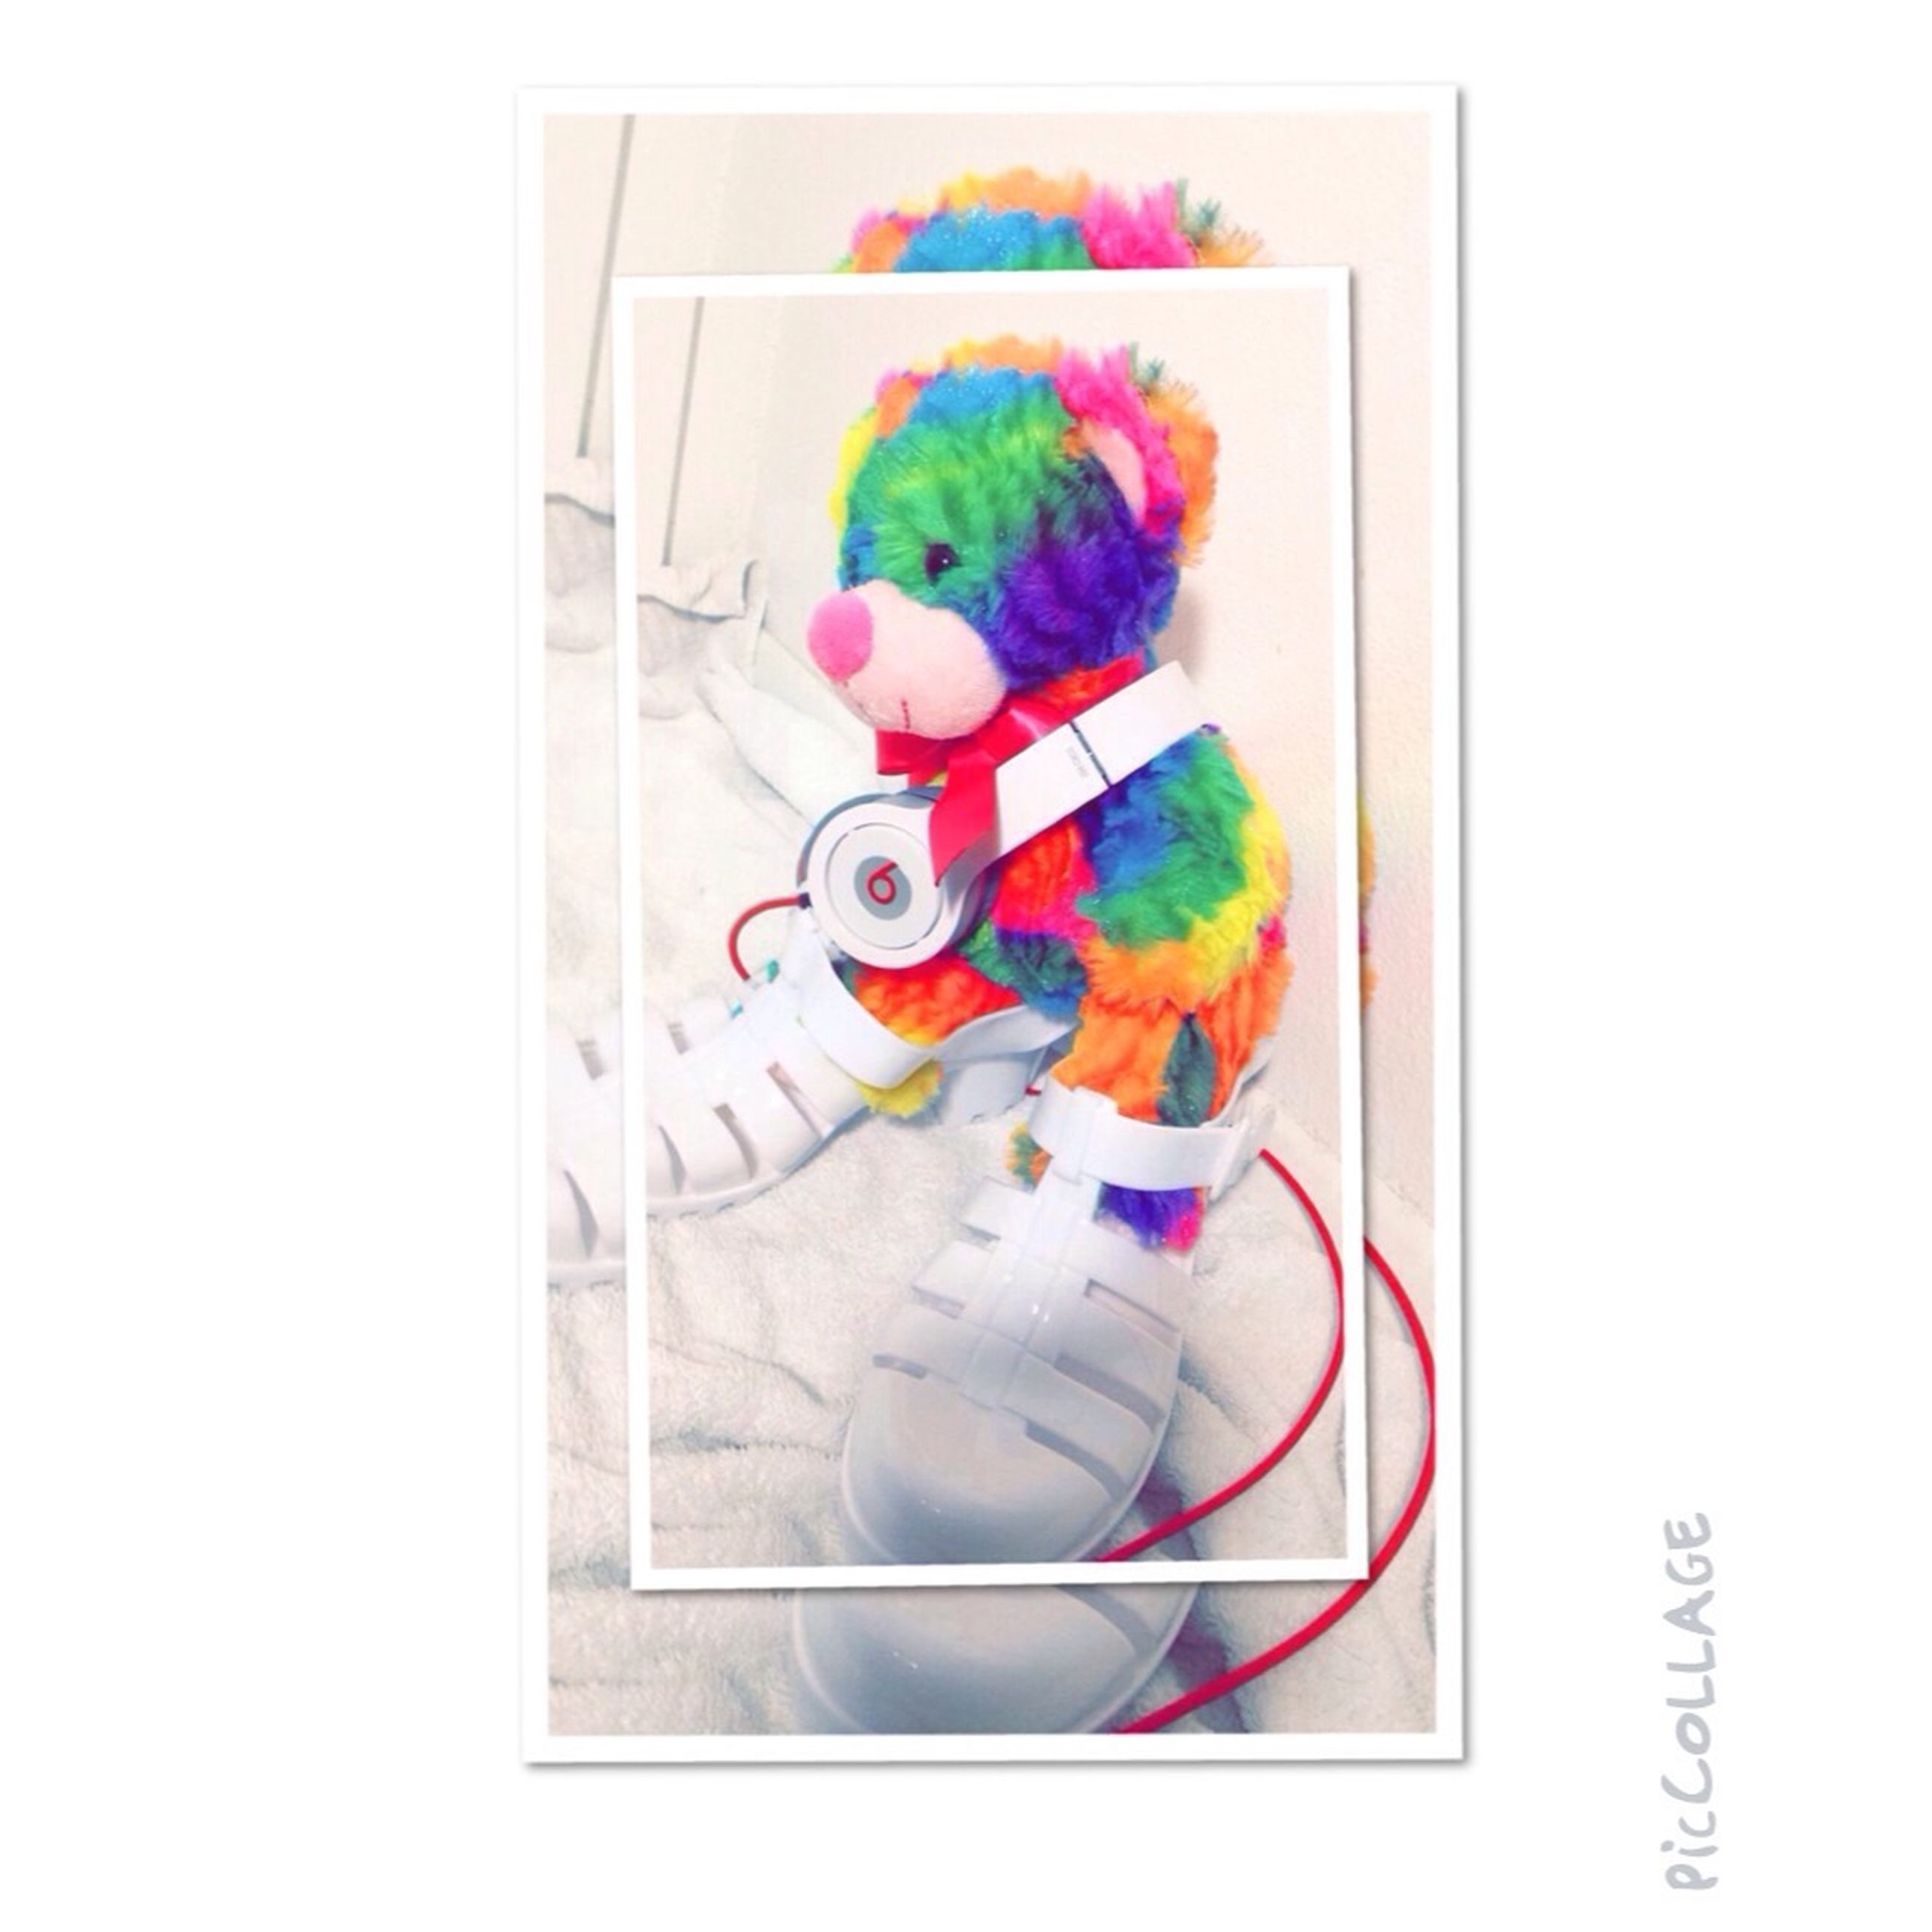 indoors, still life, art, art and craft, multi colored, creativity, white background, studio shot, variation, table, close-up, toy, flower, animal representation, human representation, transfer print, auto post production filter, ideas, paper, decoration